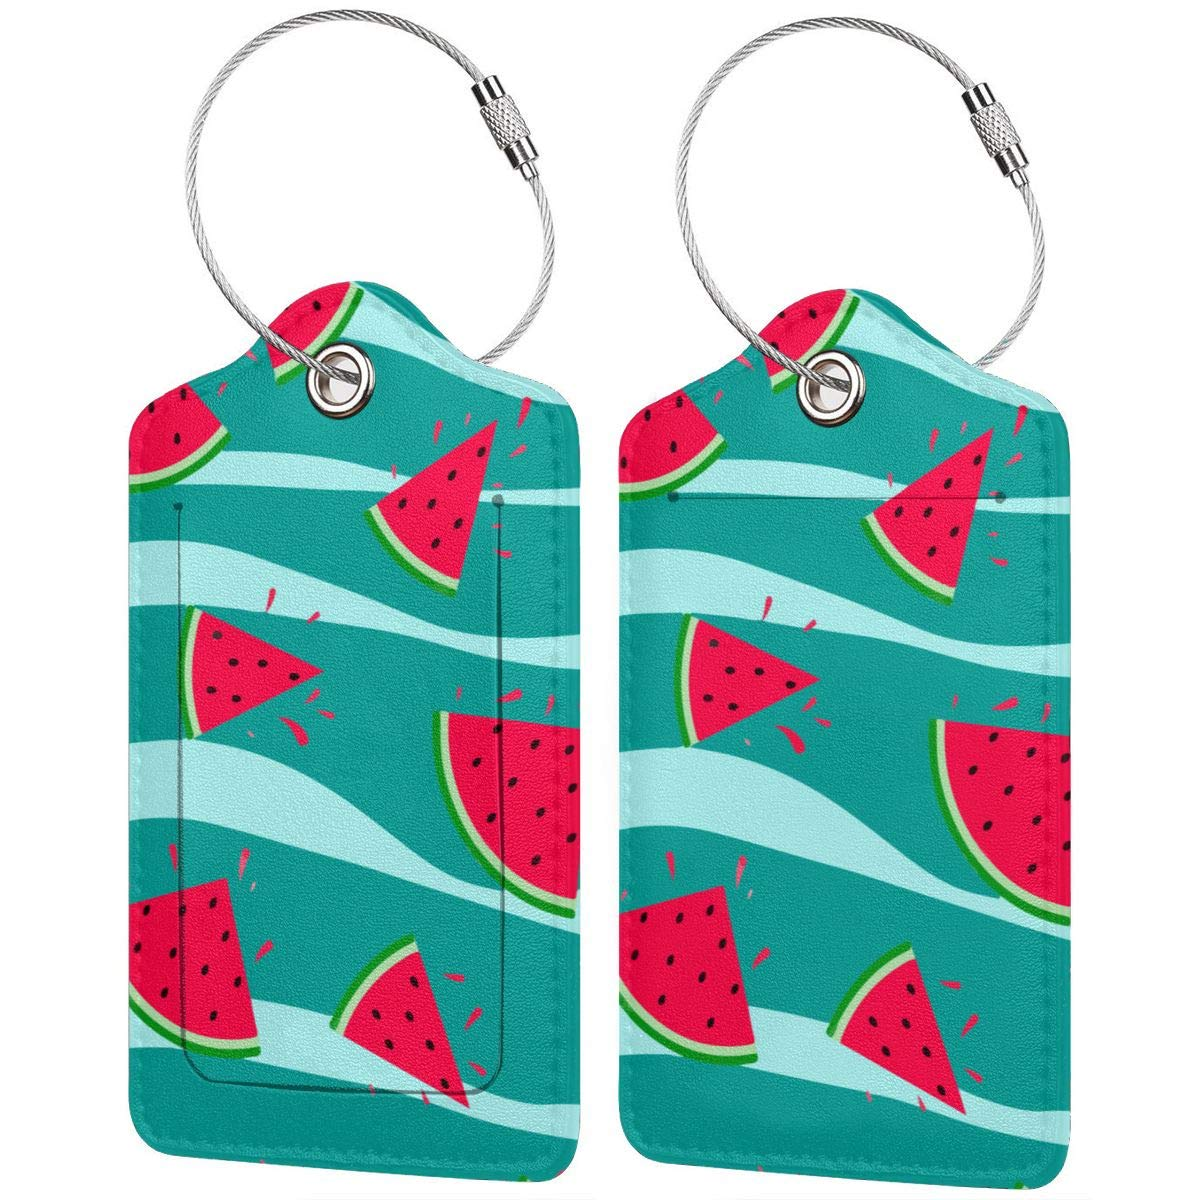 Watermelon Green Wave Leather Luggage Tags Baggage Bag Instrument Tag Travel Labels Accessories with Privacy Cover